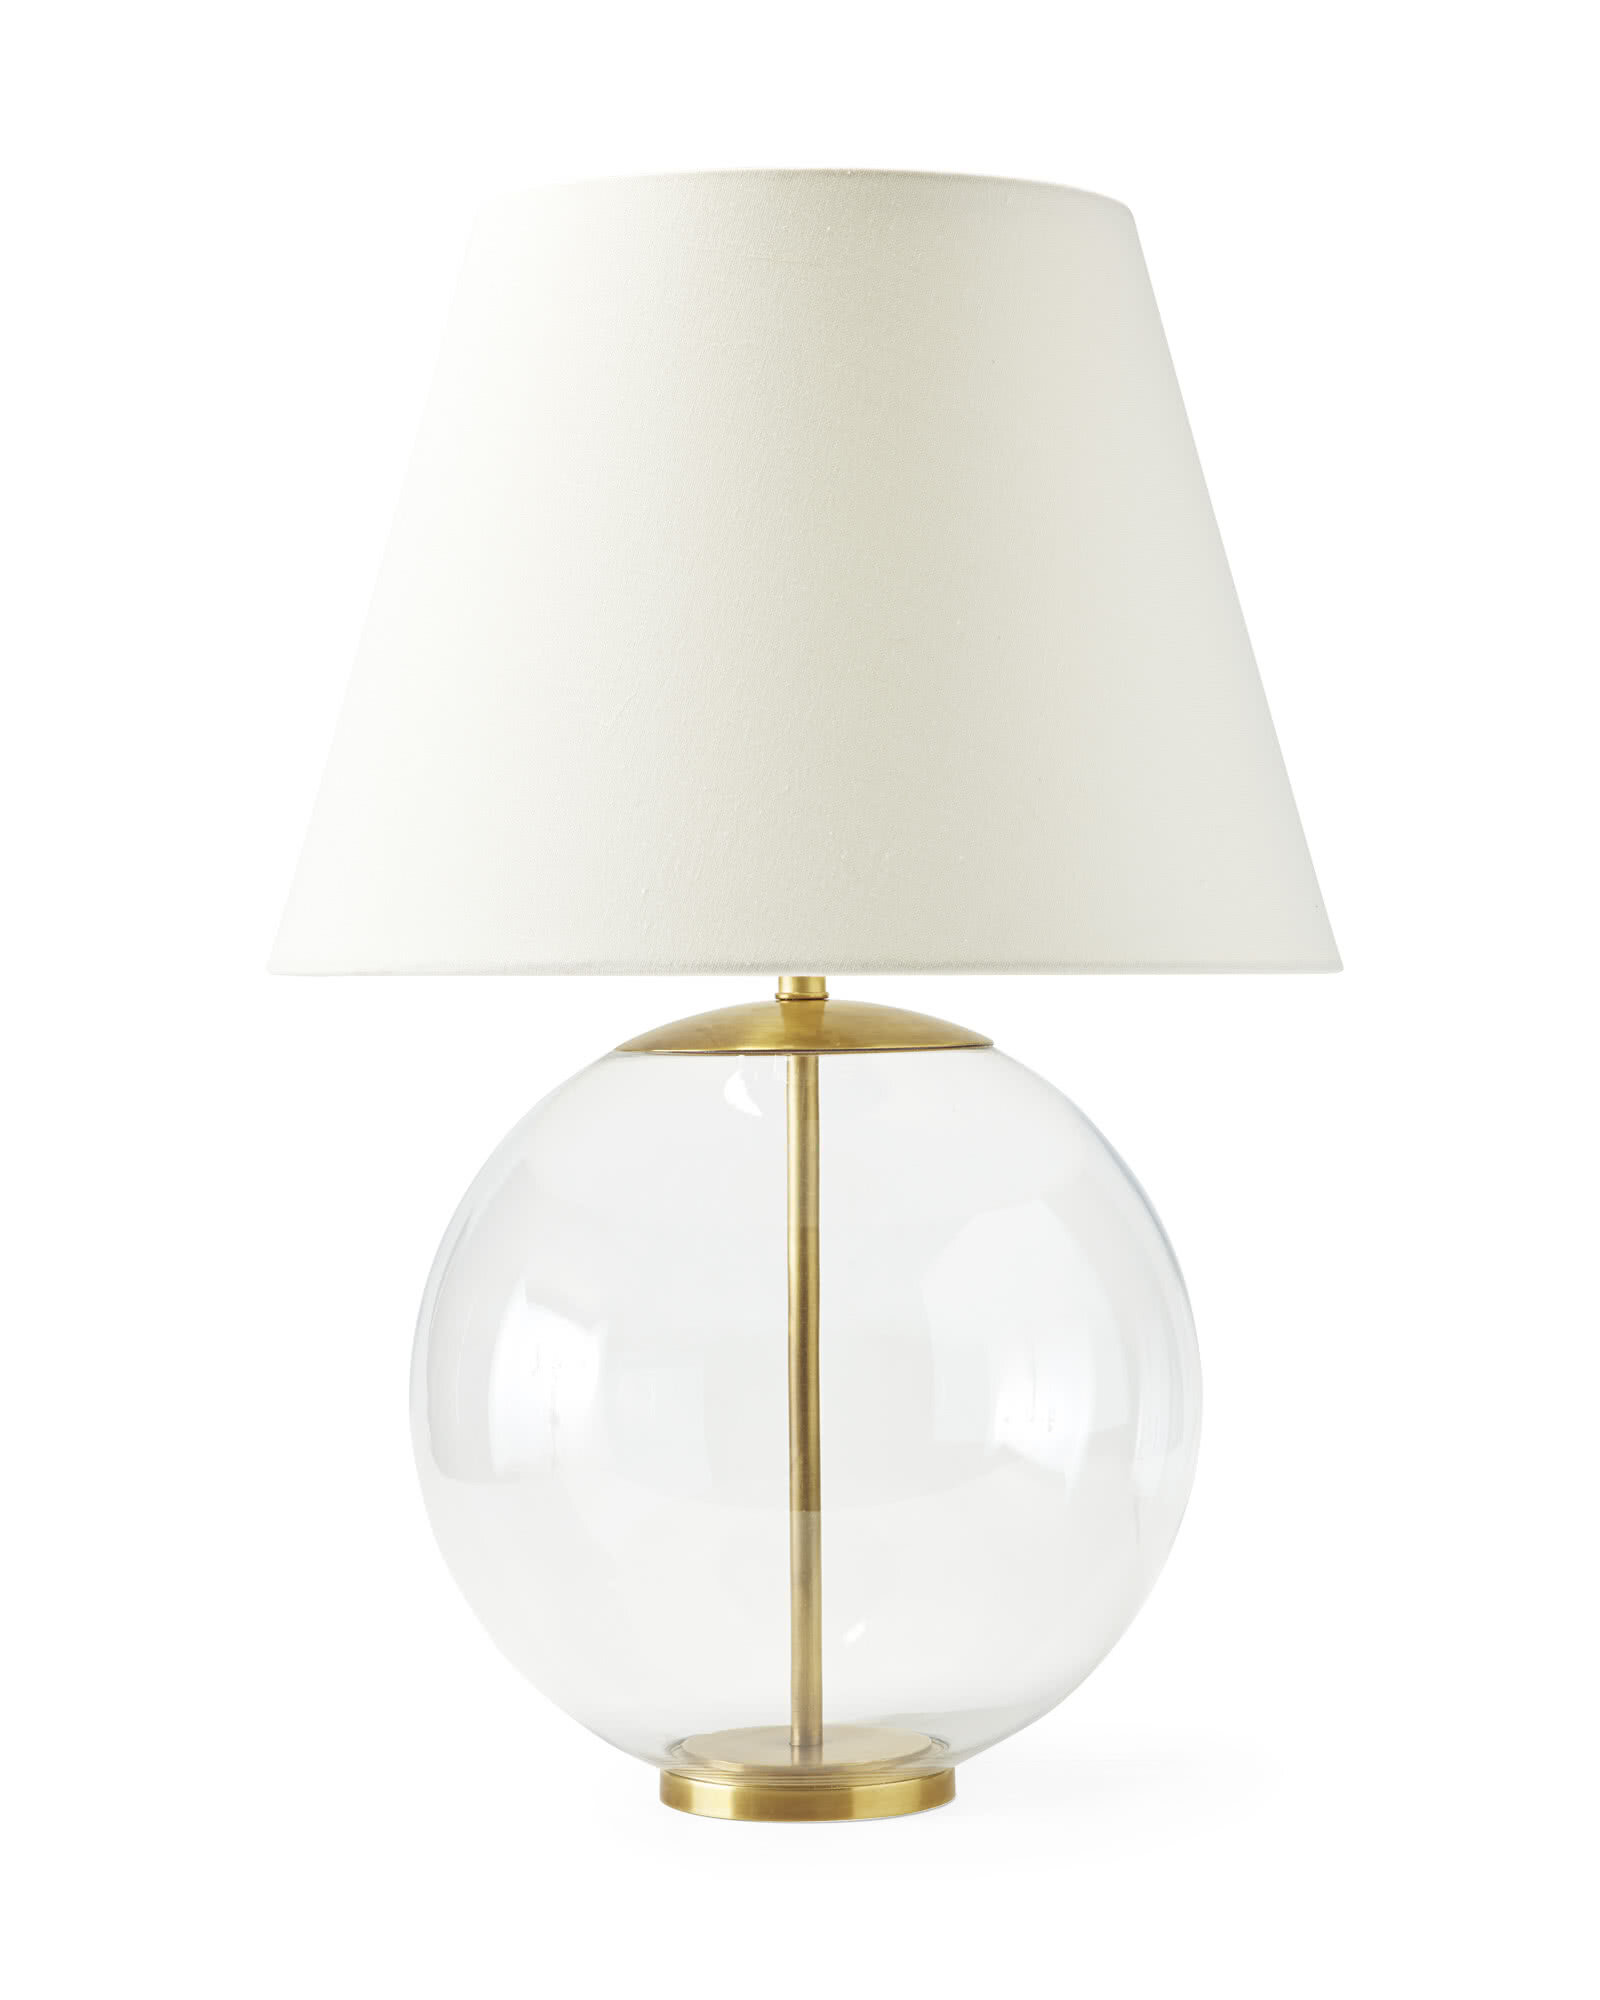 Lamp_Georgia_Glass_MV_Crop_SH.jpg